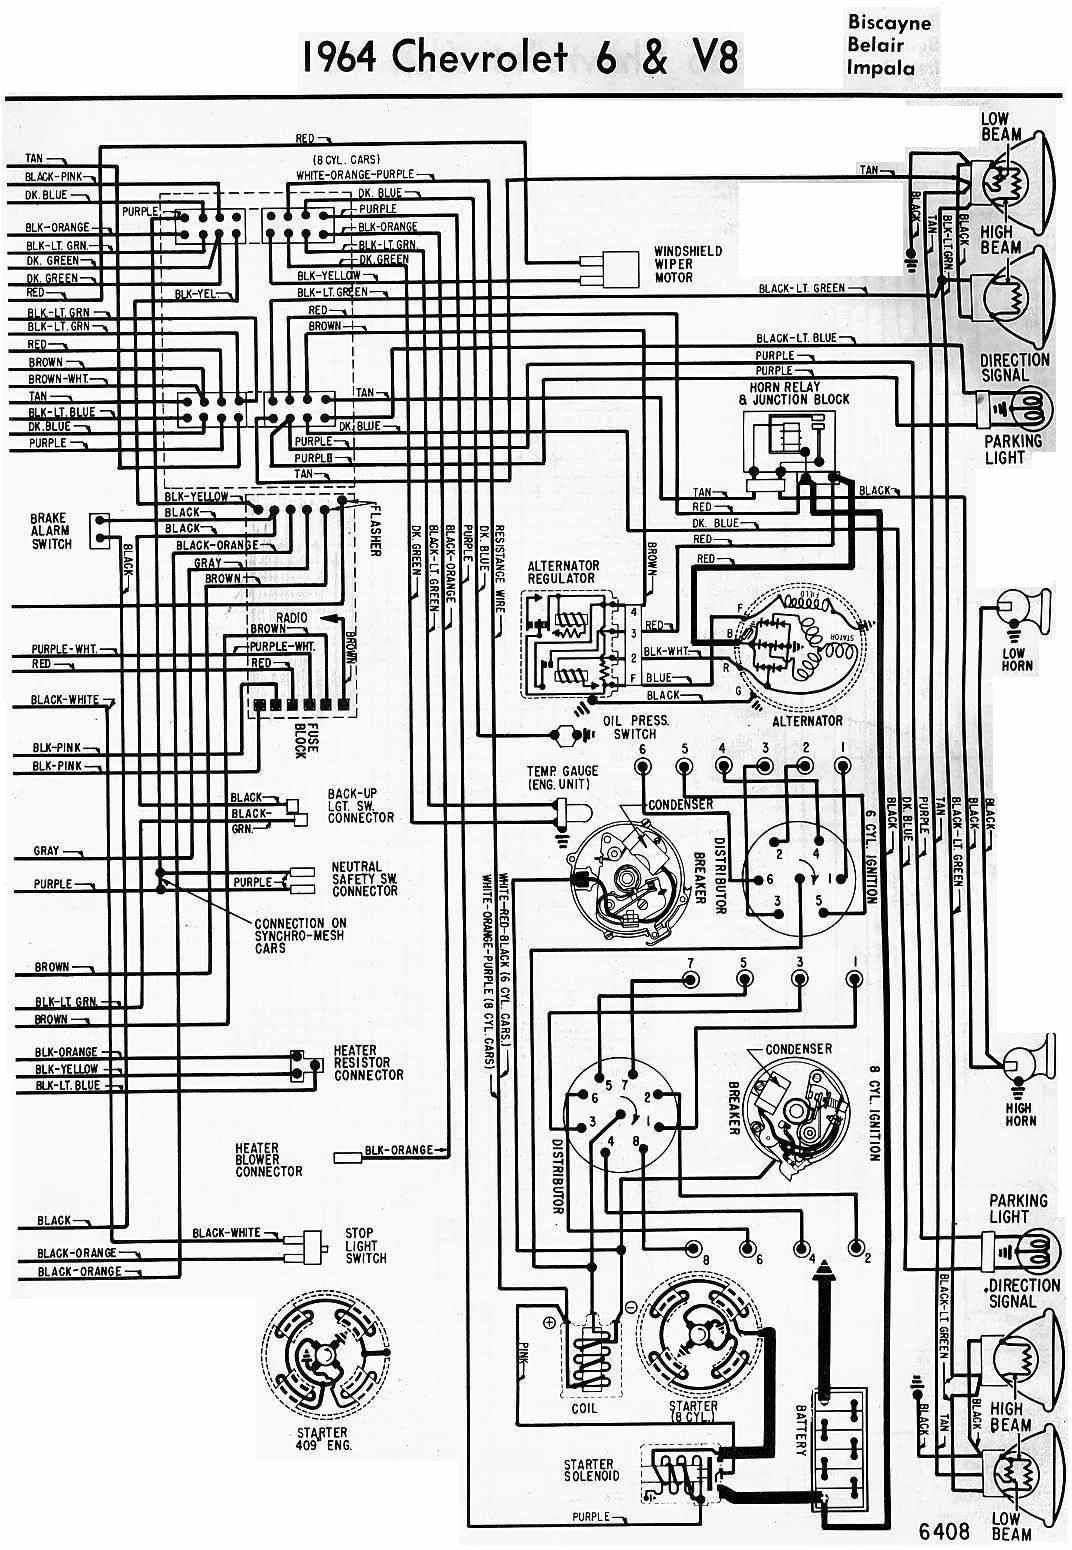 1963 chevy impala ignition wiring for starting know about wiring 1963 gmc pickup wiring diagram 63 [ 1072 x 1550 Pixel ]